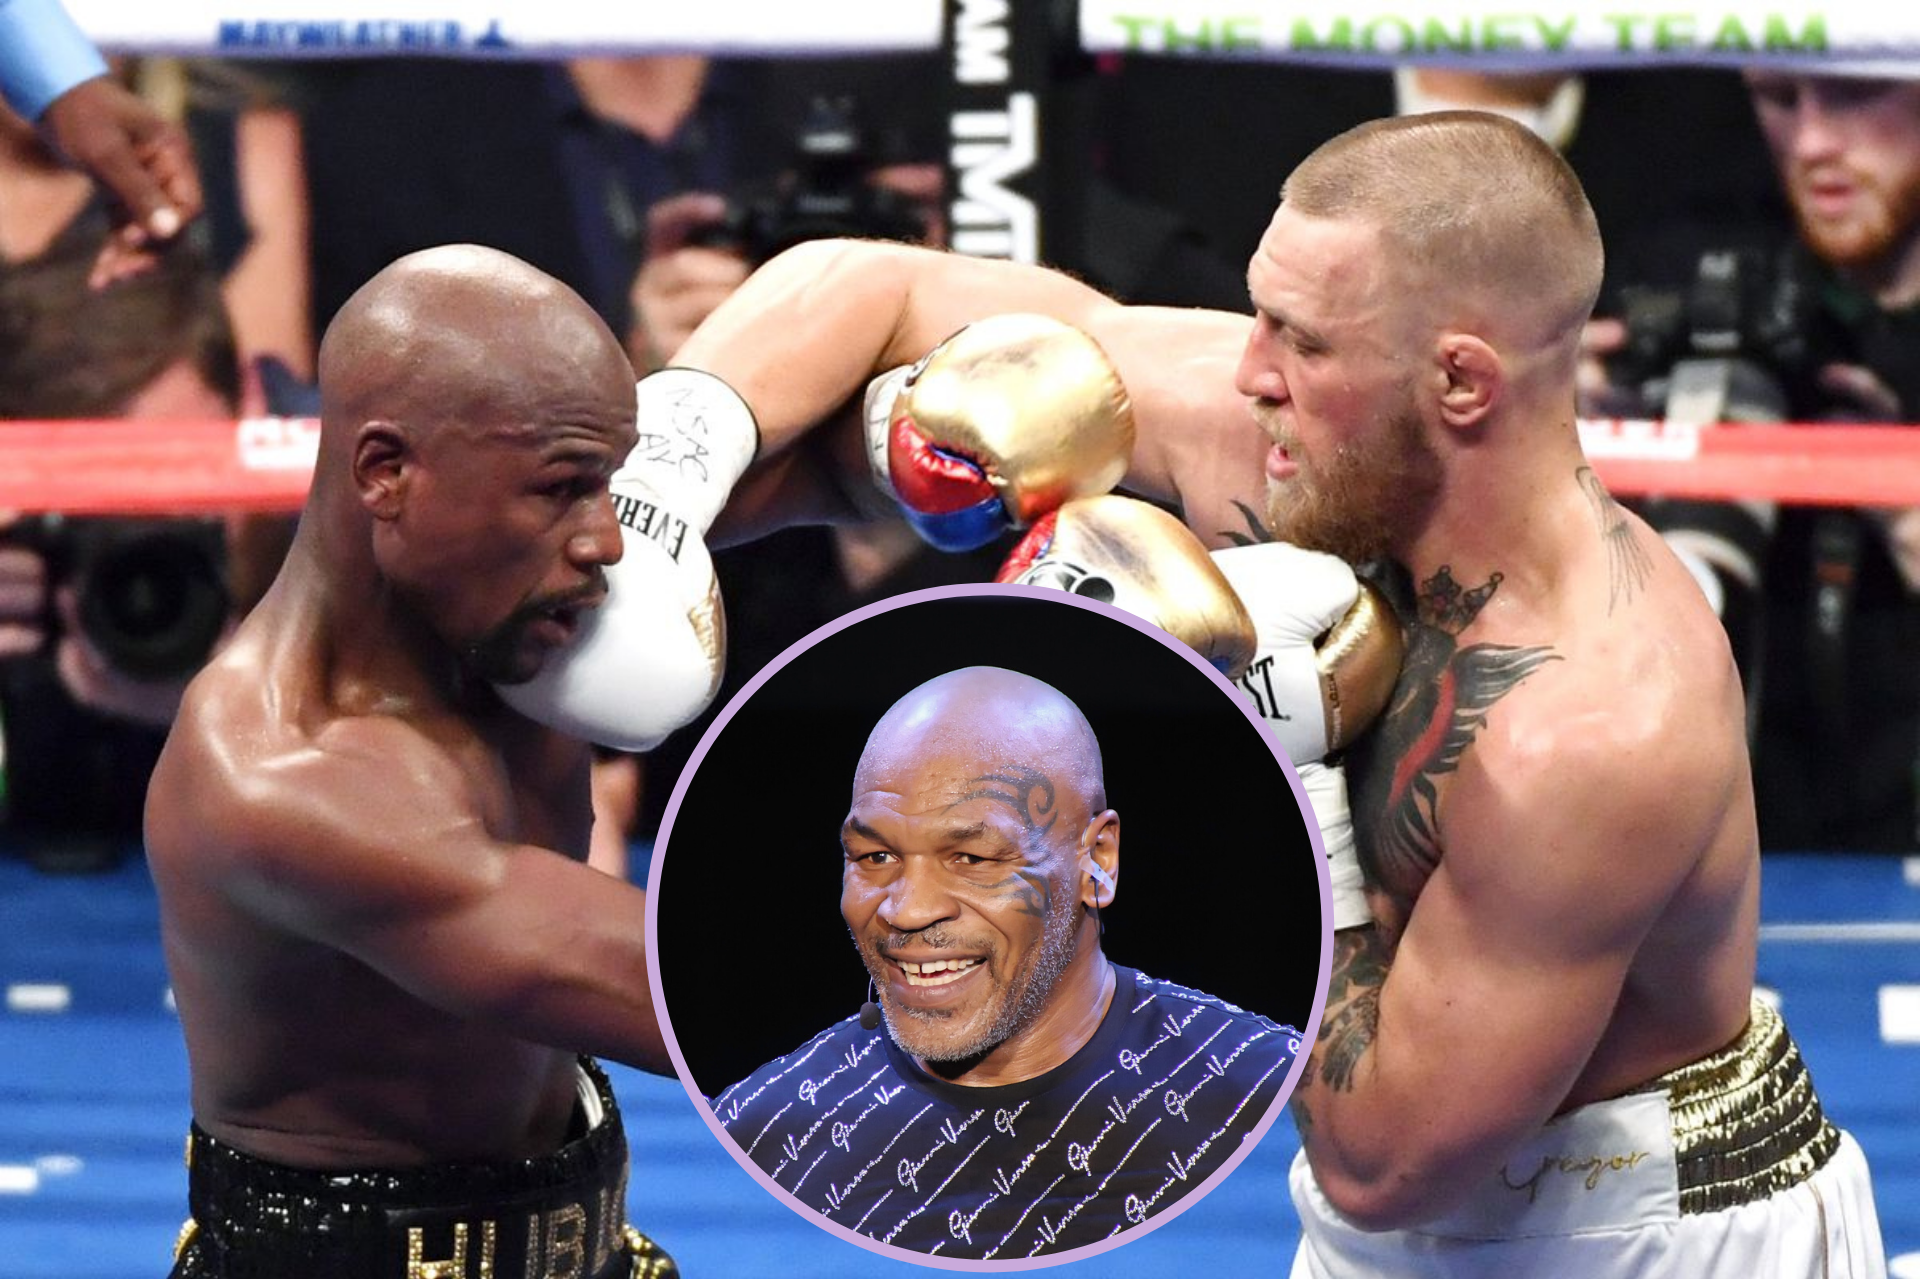 UFC News: Conor McGregor reacts to Mike Tyson passionately defending his preformance against Floyd Mayweather - Mike Tyson Conor McGregor